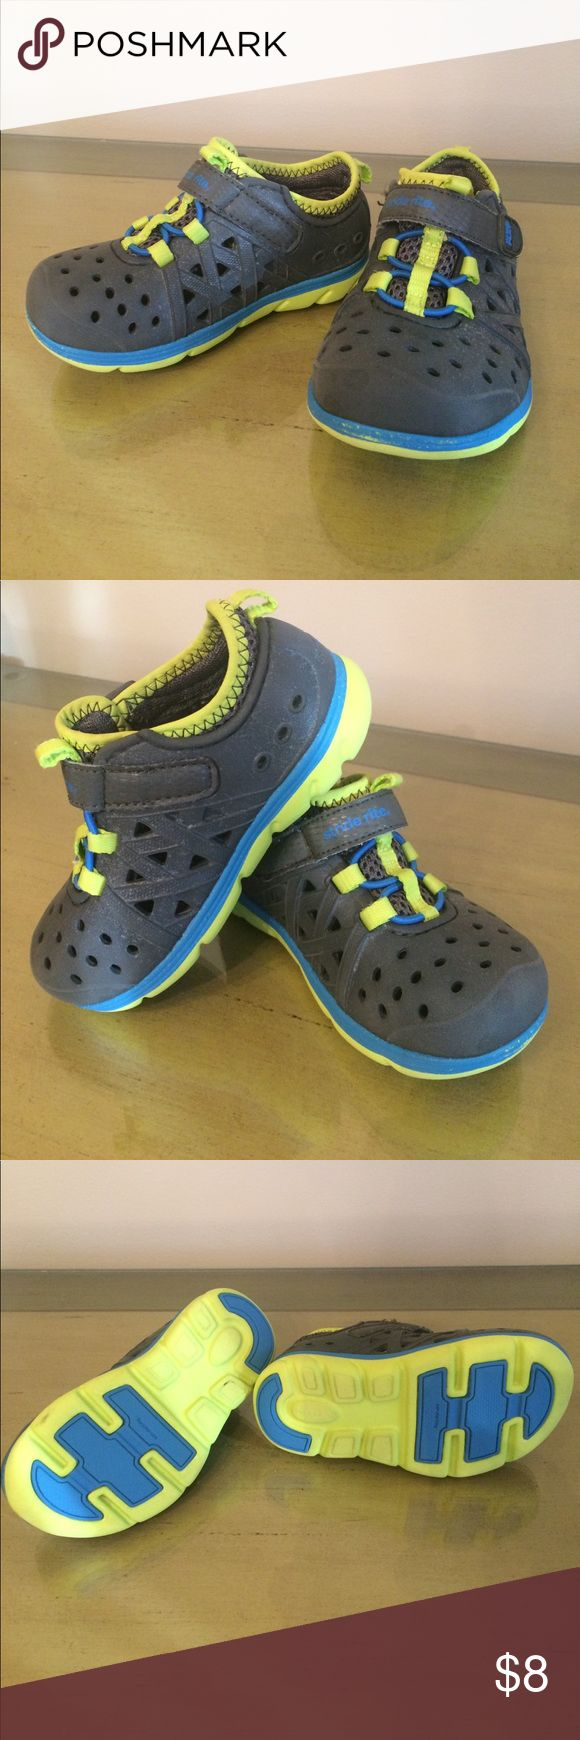 Kids Water Amphibian Shoes Stride Rite Kids Water Amphibian Shoes gently worn and washed. Still have more life in them! Stride Rite Shoes Water Shoes